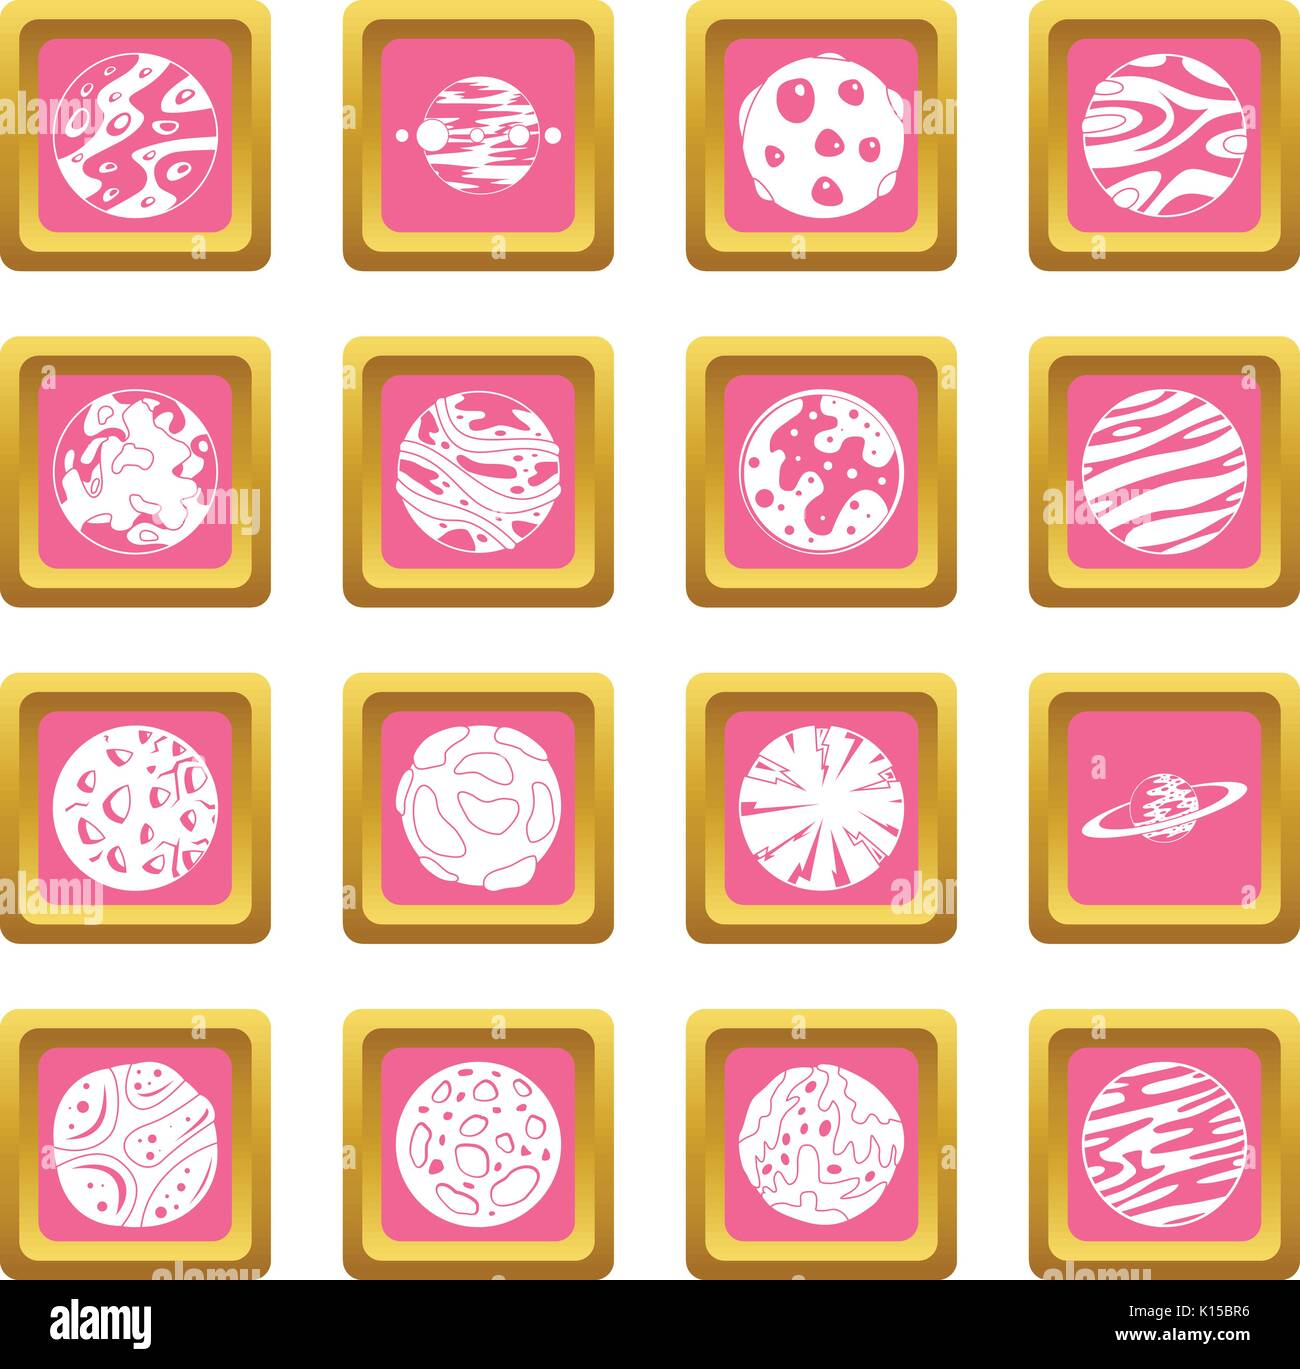 Fantastic planets icons pink - Stock Image